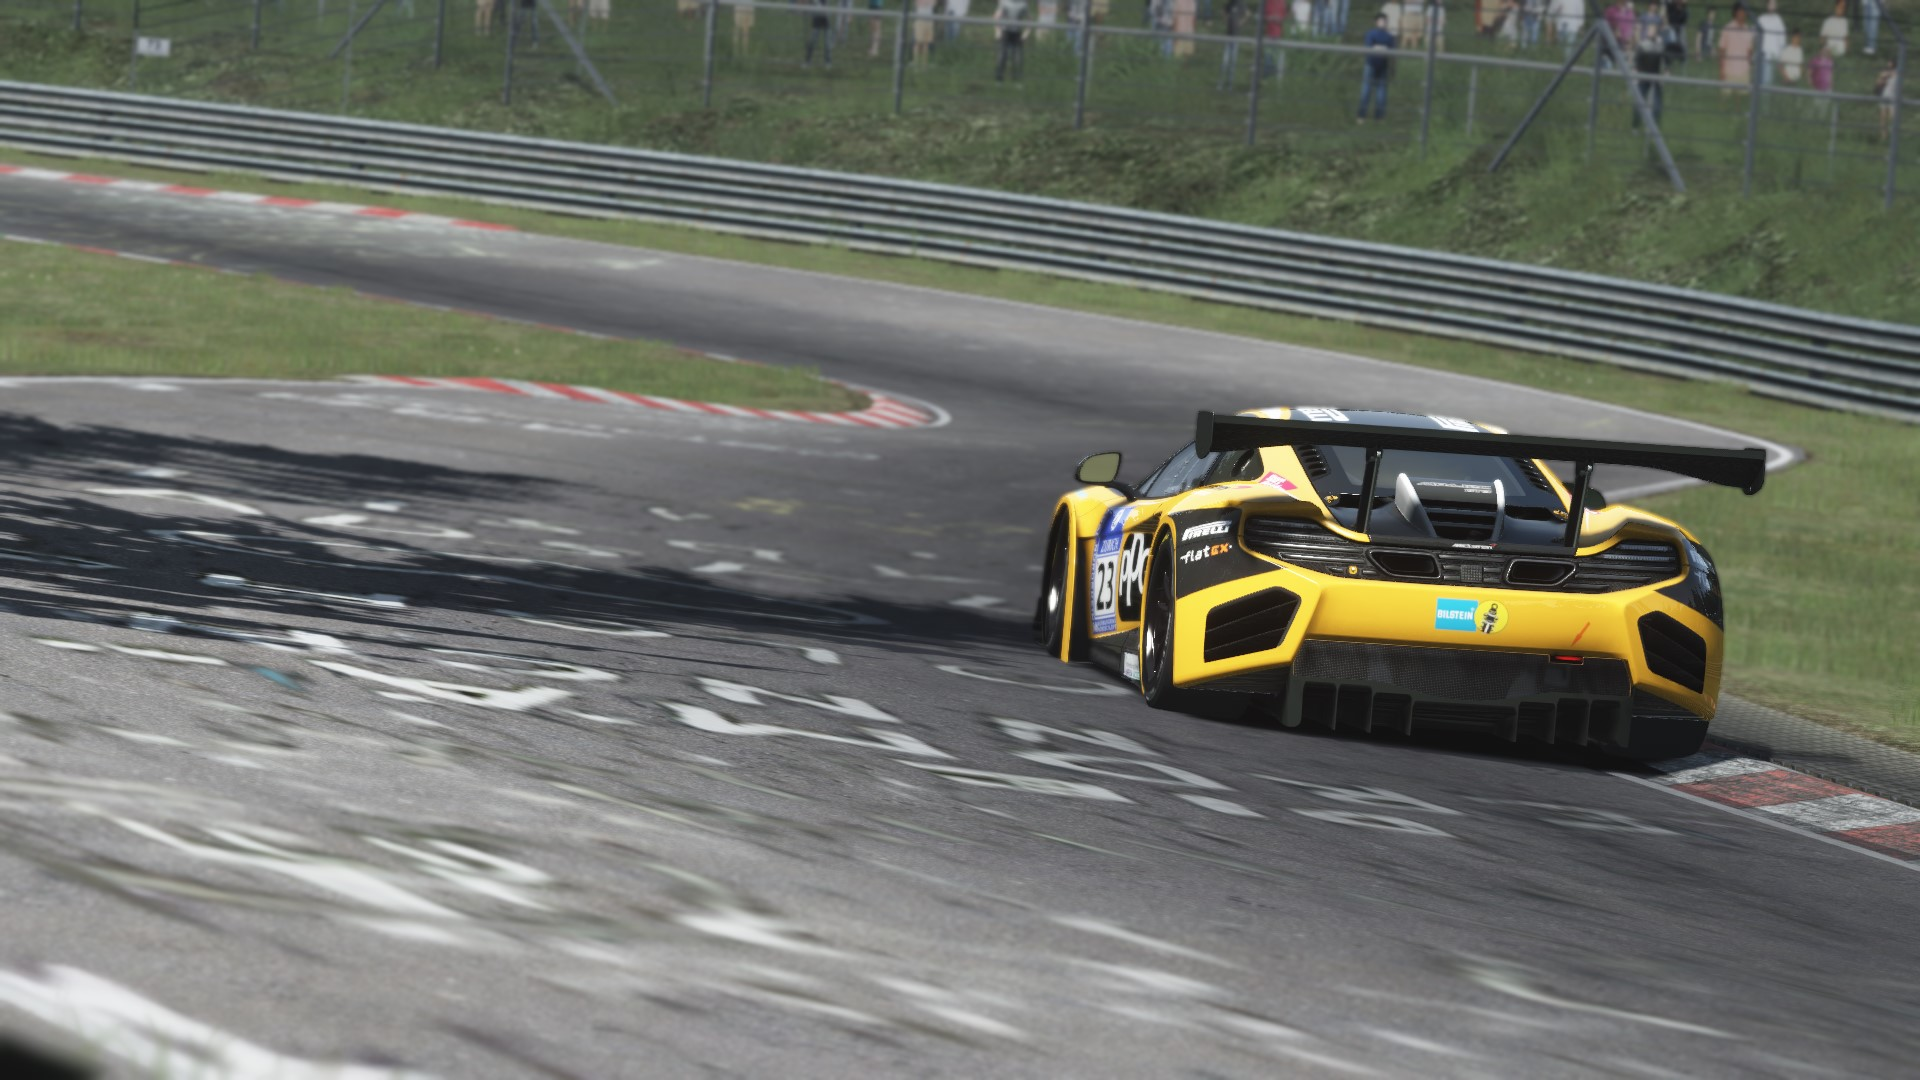 Screenshot_mclaren_mp412c_gt3_ks_nordschleife_13-3-115-15-29-20.jpg